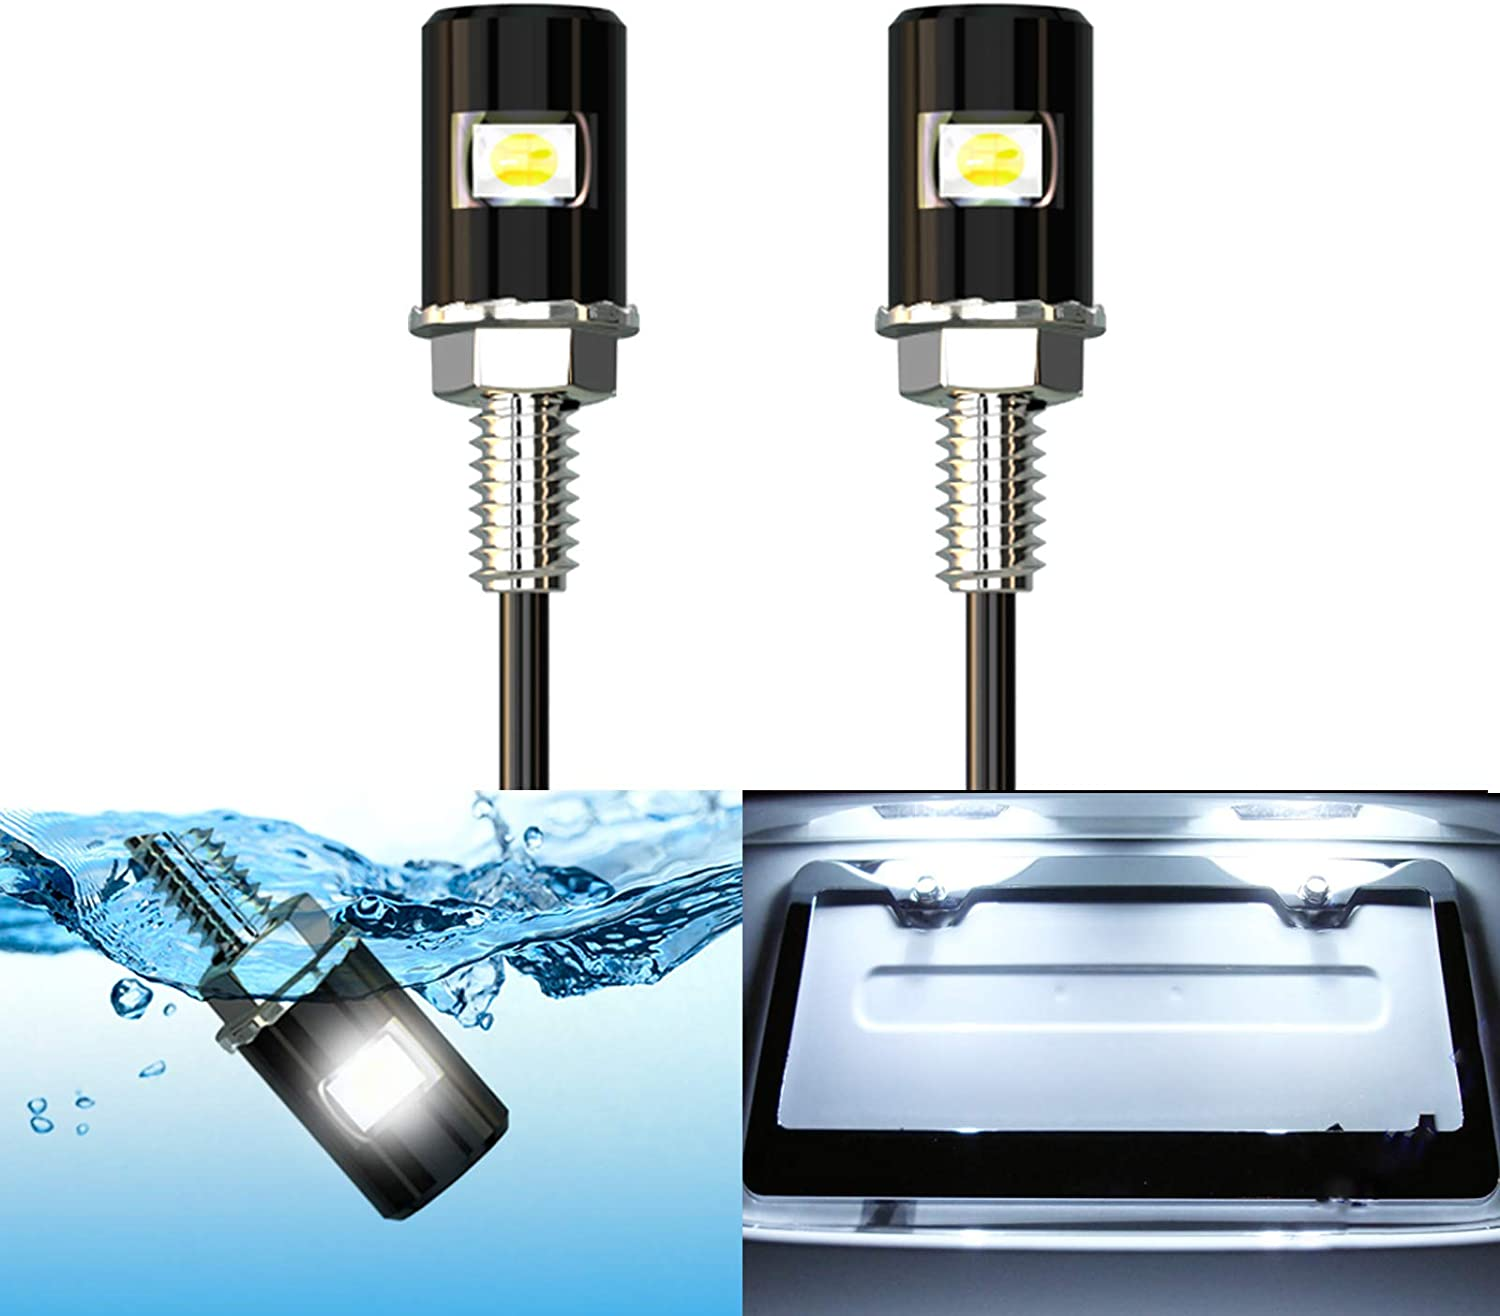 Bombing free shipping WEIMELTOY excellence License Plate Light Screw LED Bolt Bri Super